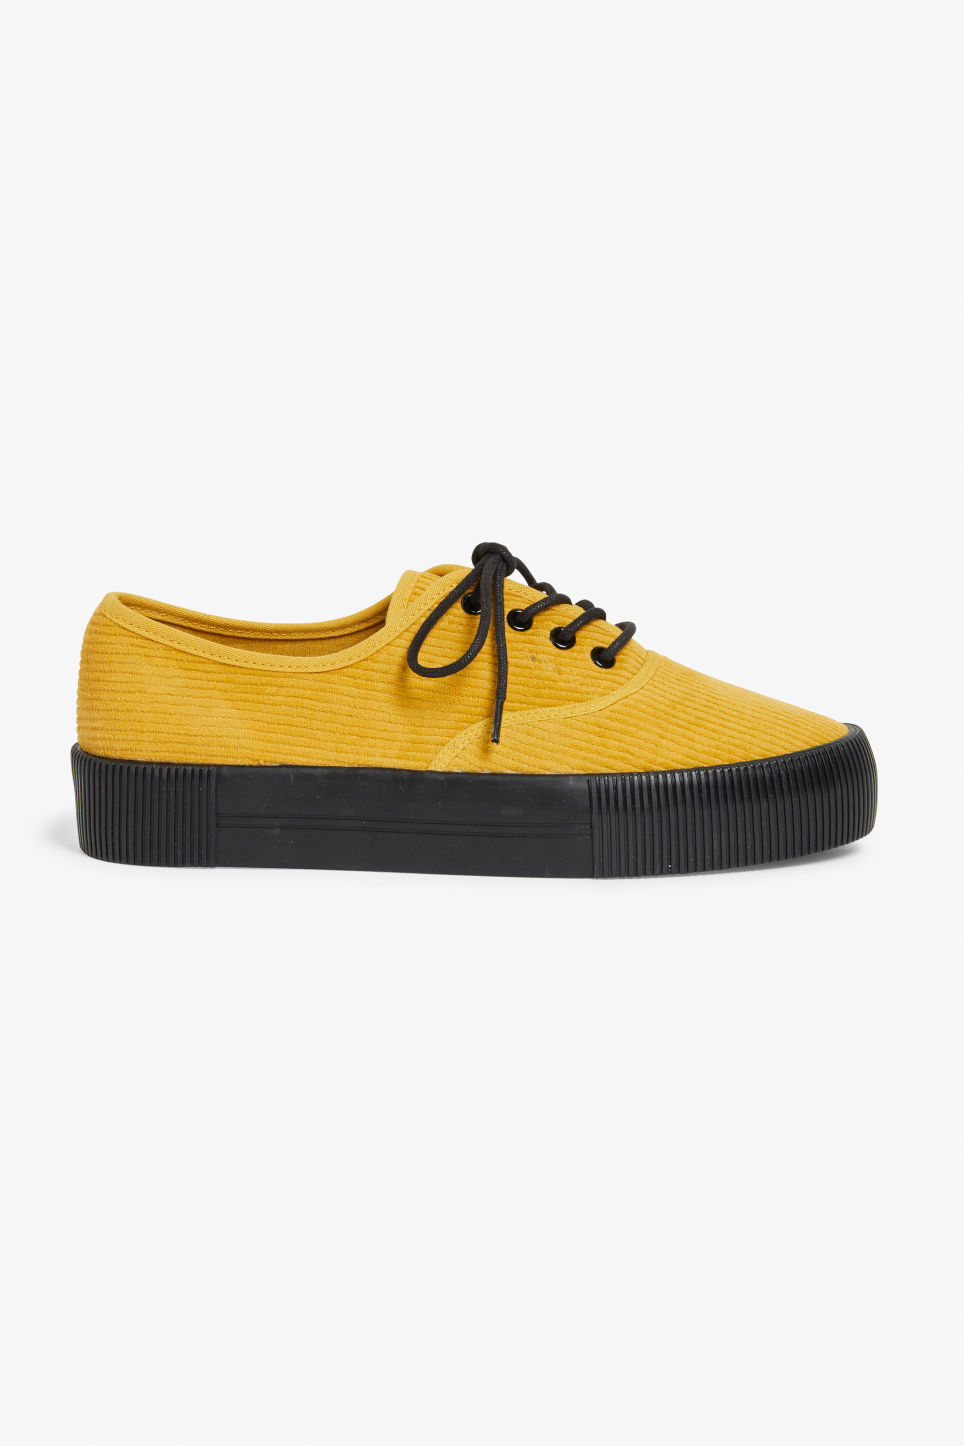 Detailed image of Monki lace-up sneakers in yellow